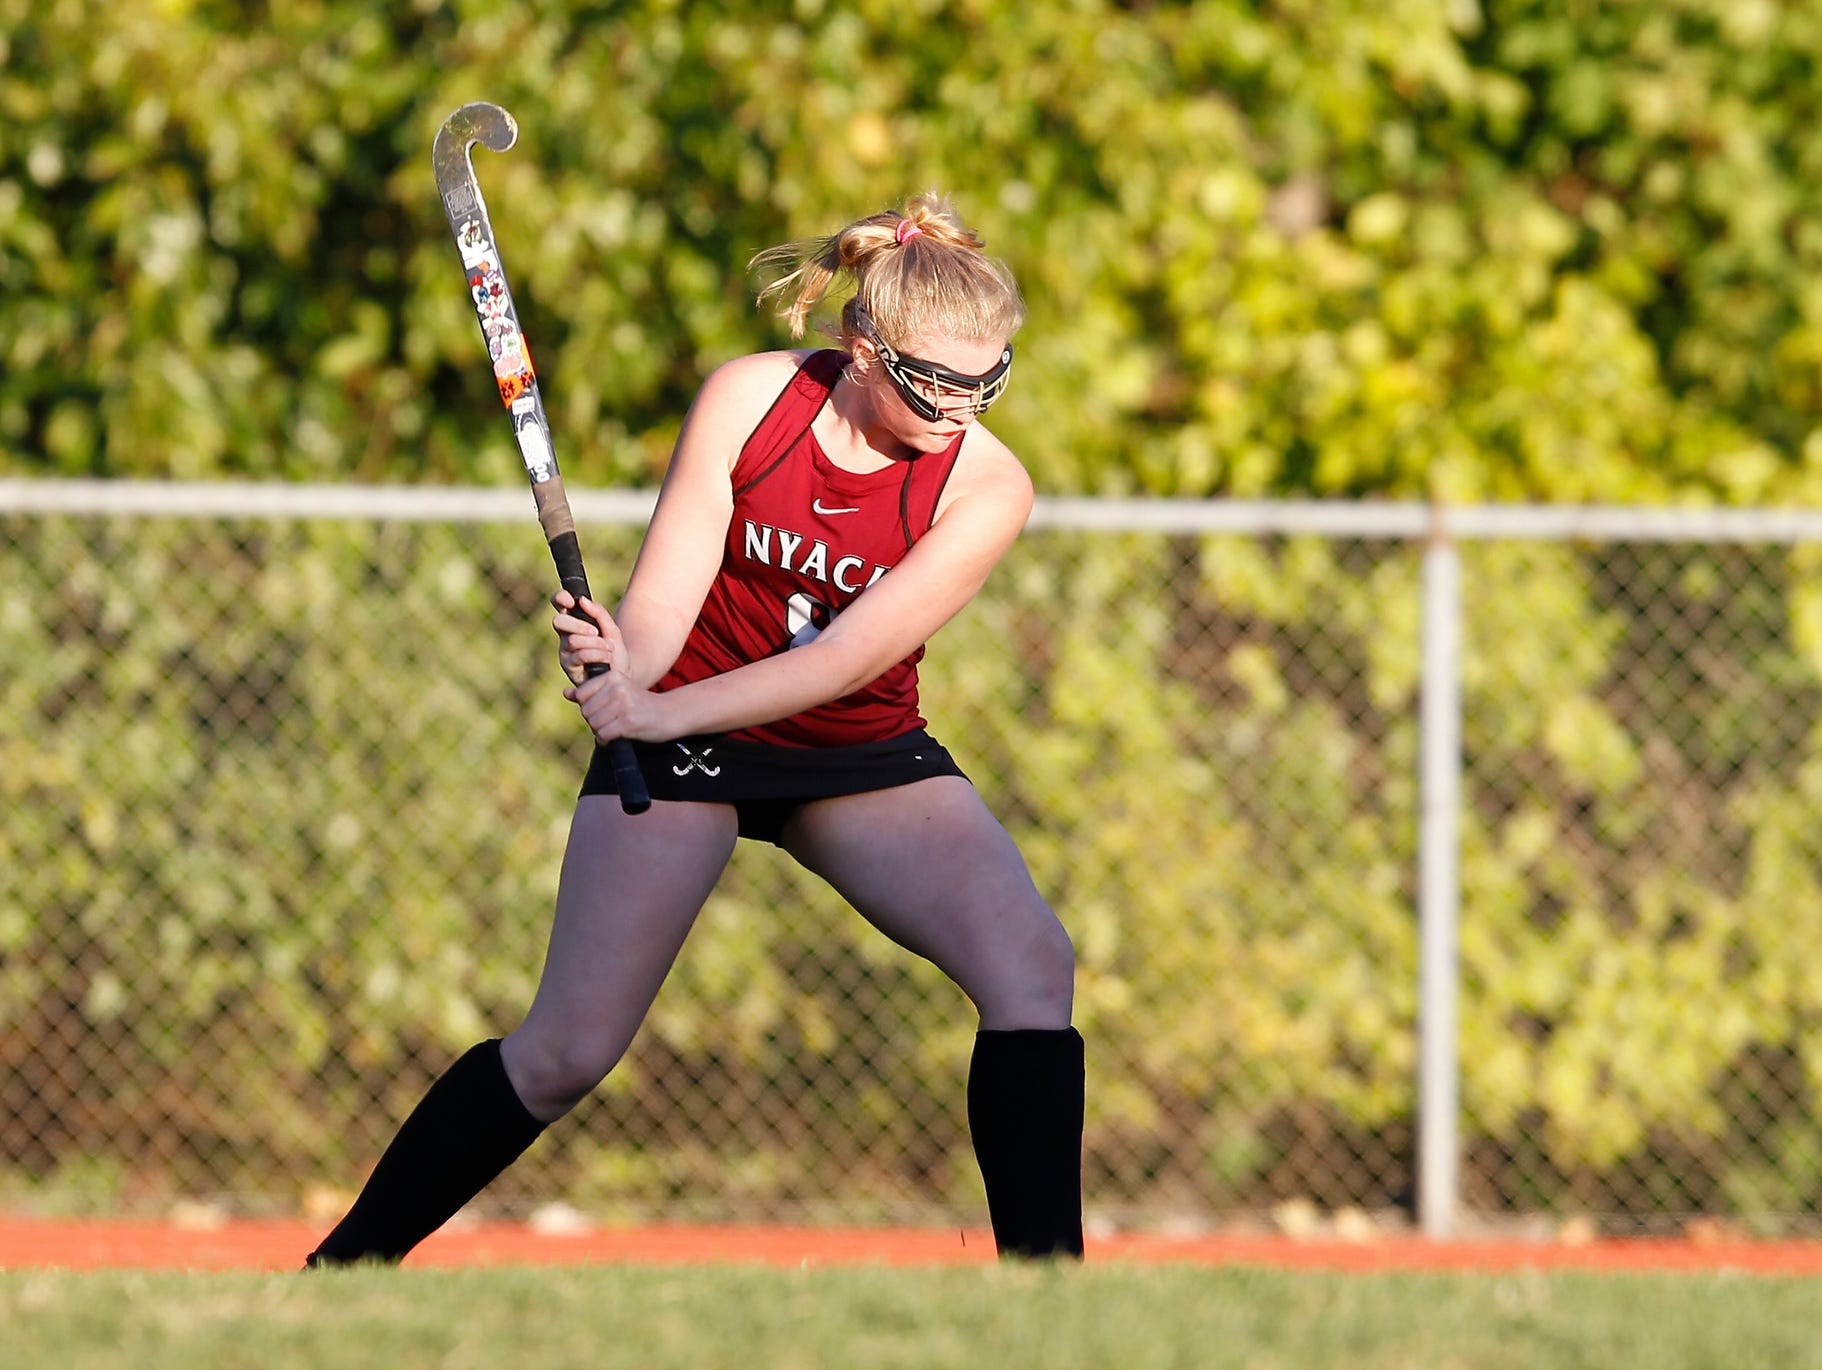 Nyack's Olivia Demetres (8) fires a pass up the sideline during a varsity field hockey game at Pearl River High School on Friday, Oct. 16, 2015.